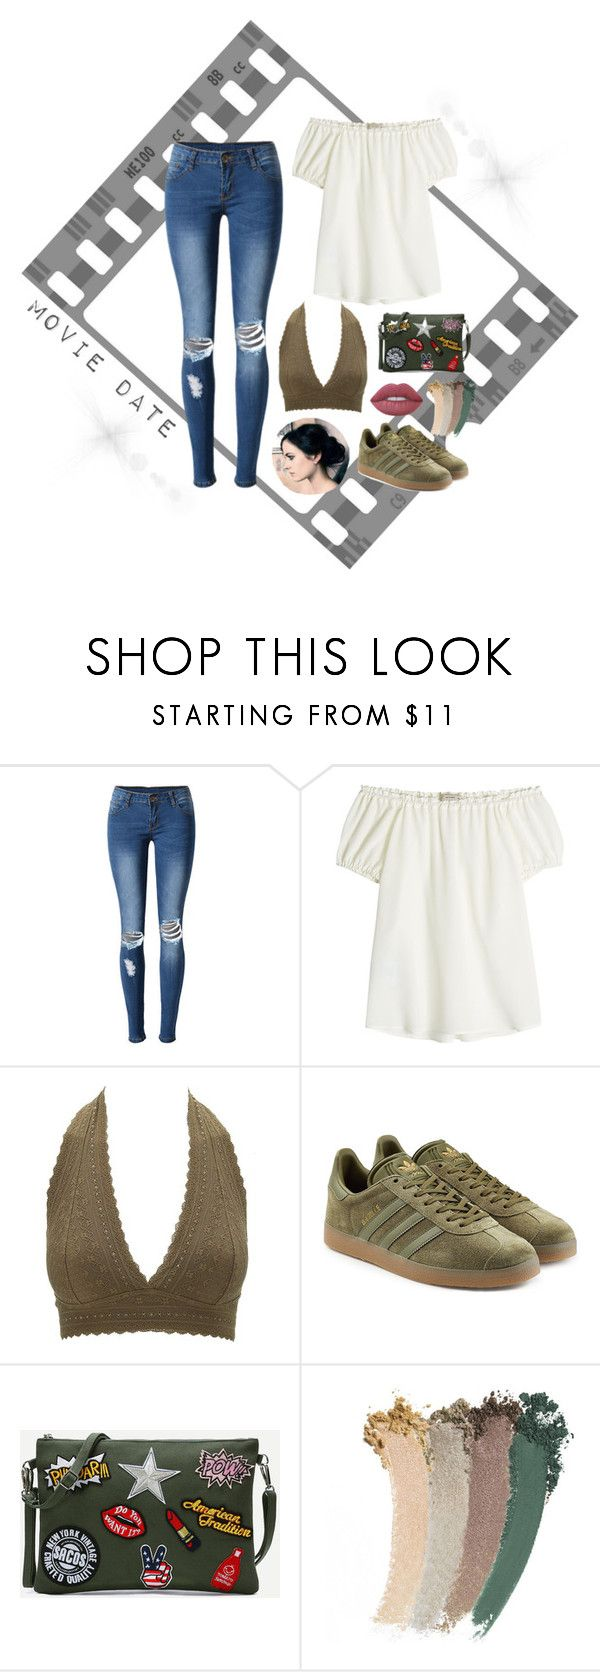 """Movie Date Outfit"" by gretcheng02 on Polyvore featuring WithChic, Etro, Charlotte Russe, adidas Originals, Gucci, Lime Crime, date, movie, olive and casualoutfit"